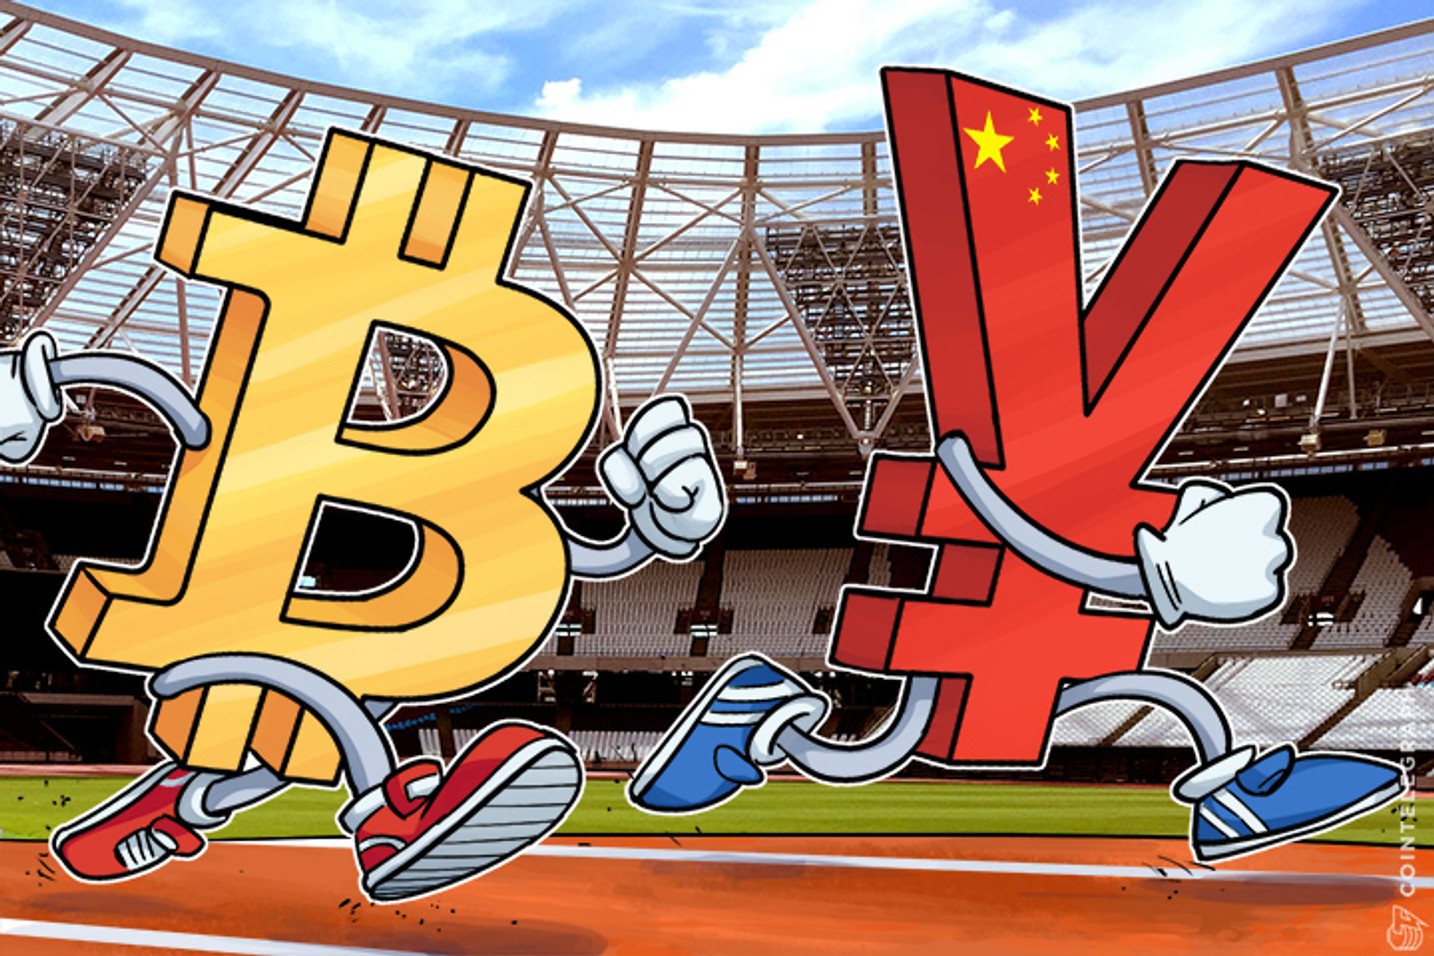 Yuan Becomes World's Fifth Reserve Currency, Can Bitcoin Be Sixth?